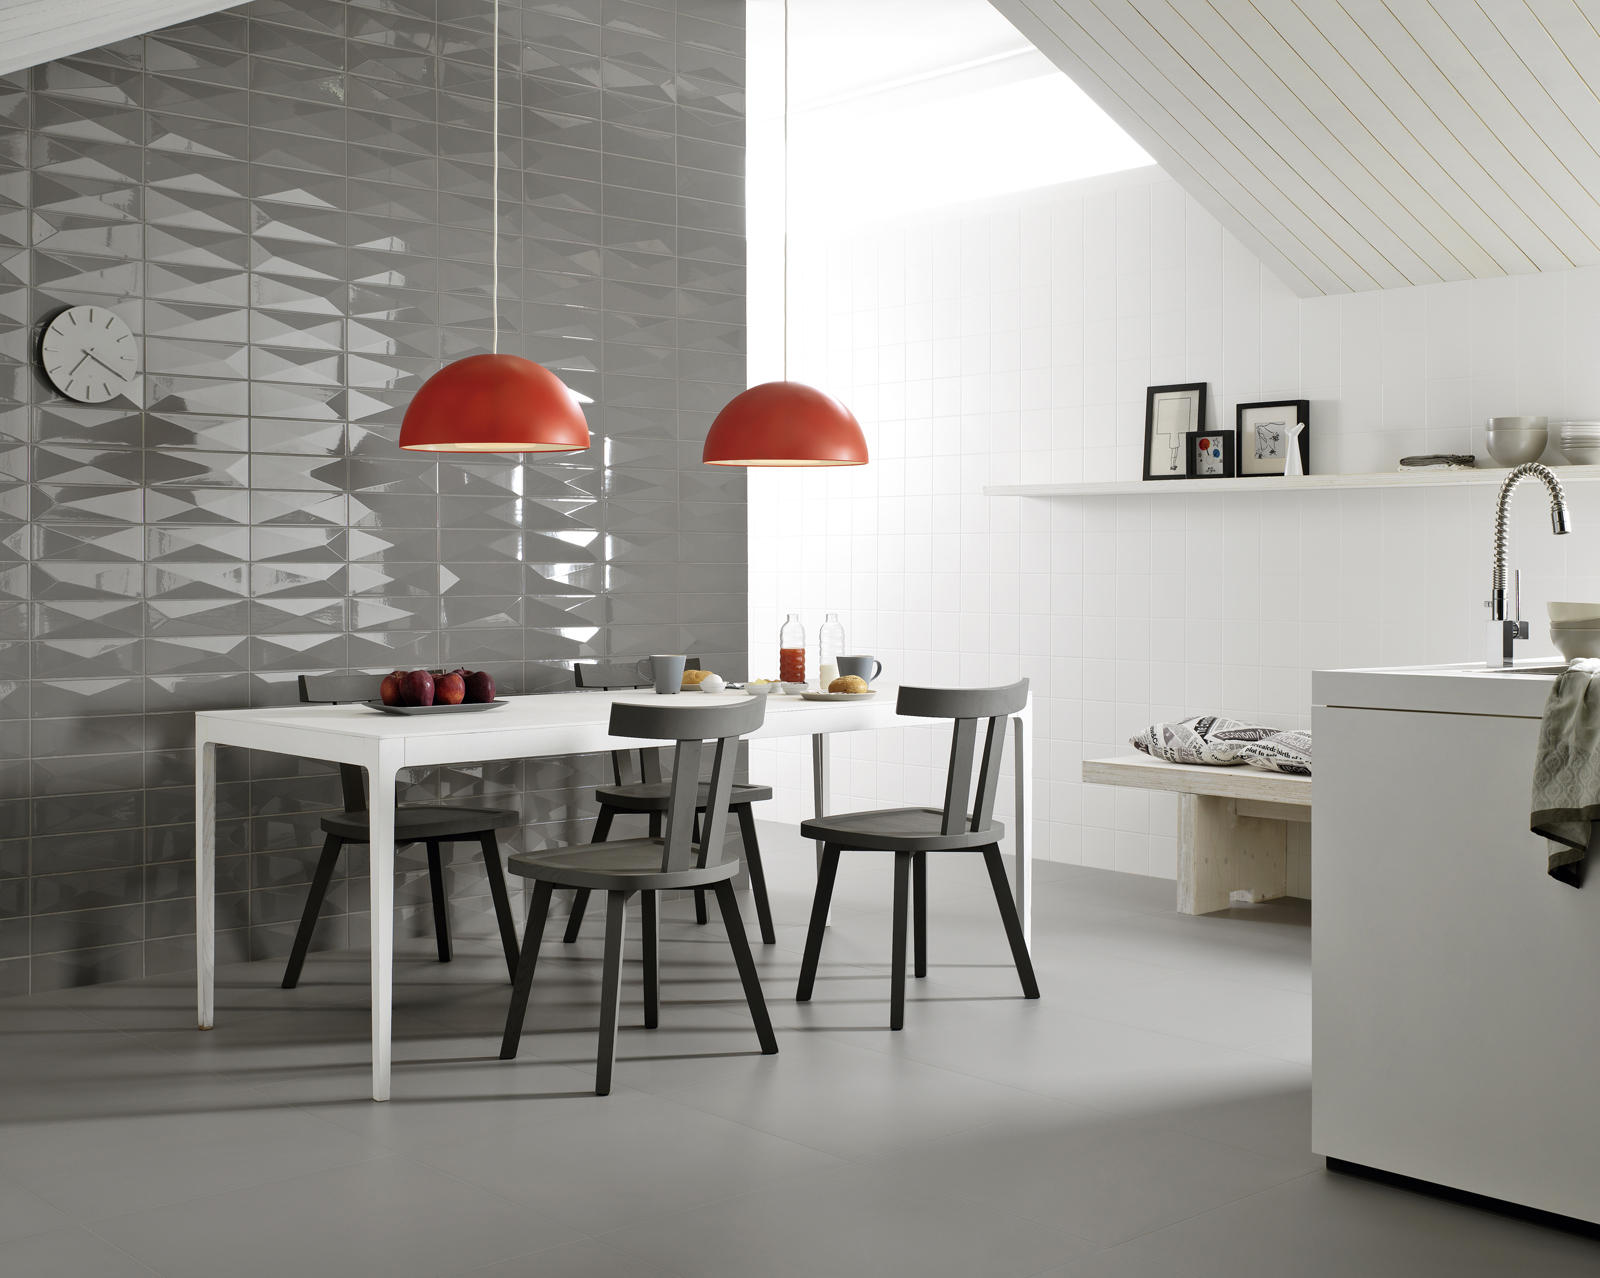 Sistem c citt floor tiles from marazzi group architonic ambient images dailygadgetfo Choice Image